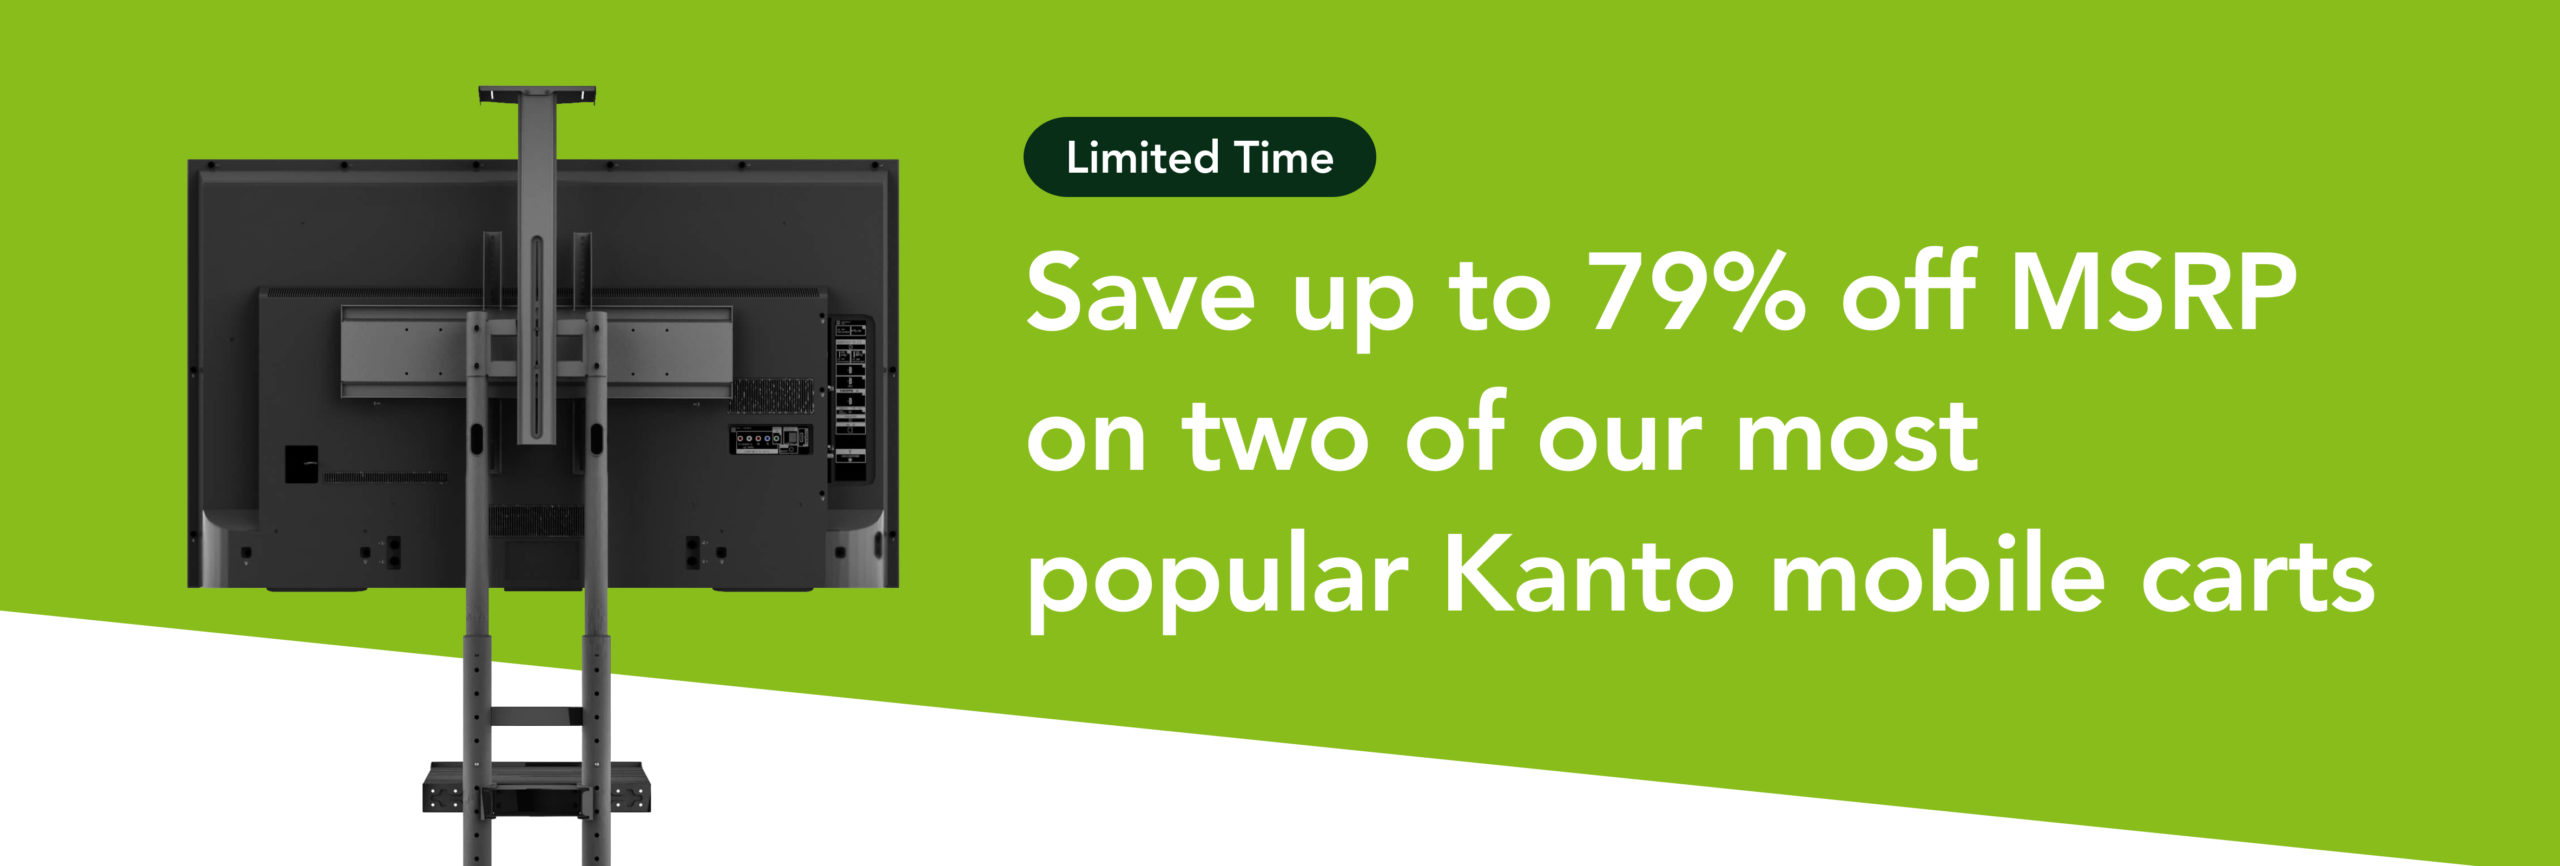 Savings up to 79% off MSRP now available on select Kanto mobile TV carts